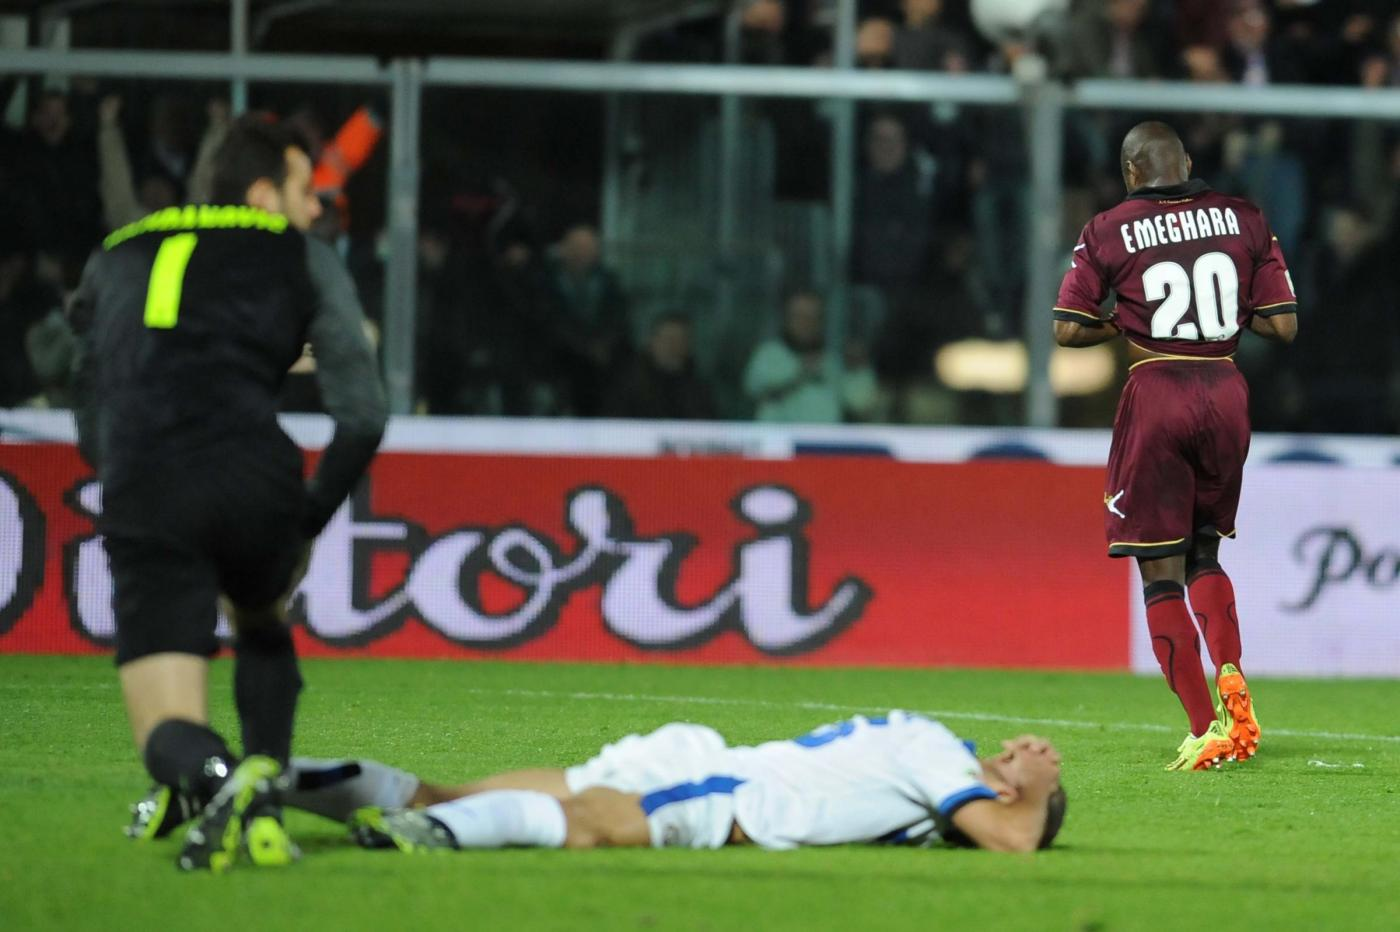 Livorno vs Inter 2-2: sciagurato errore di Guarin